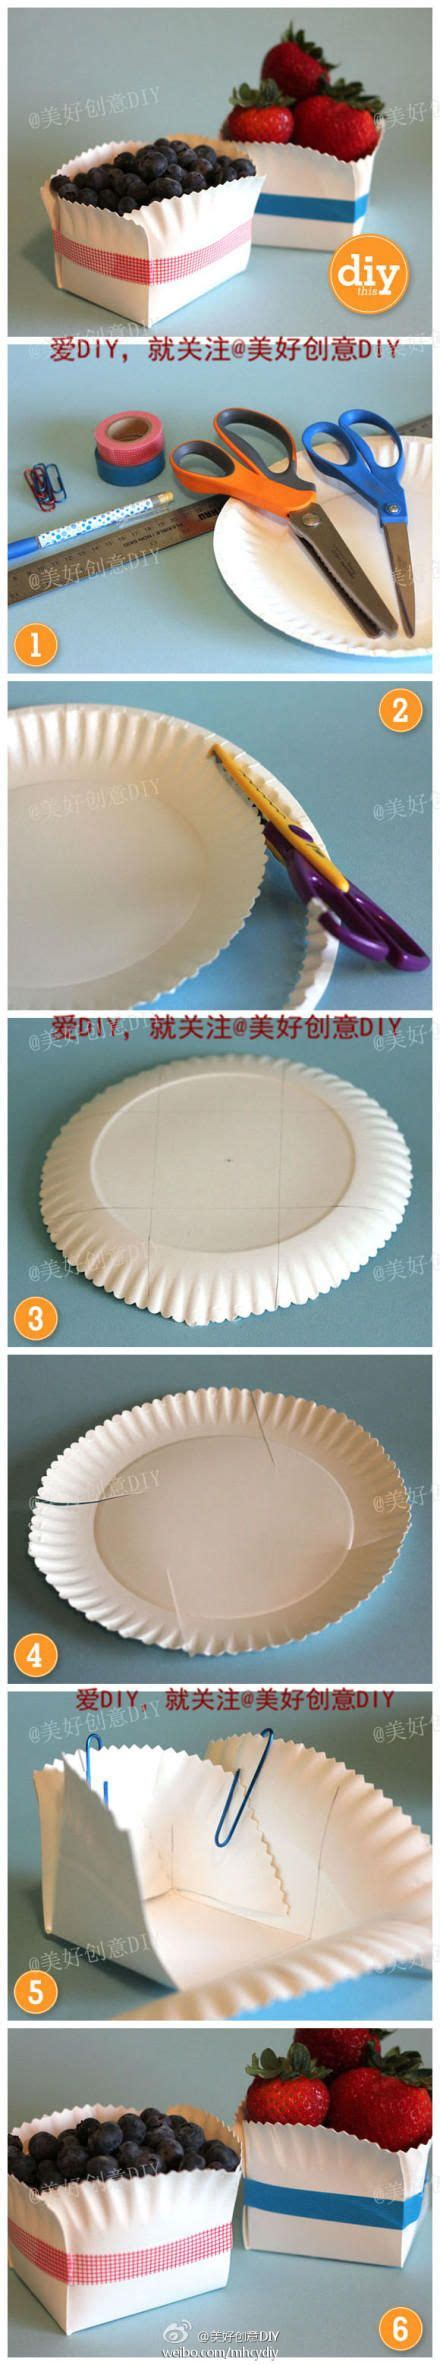 Make A Bowl Out Of Paper - make a bowl out of paper plates crafty